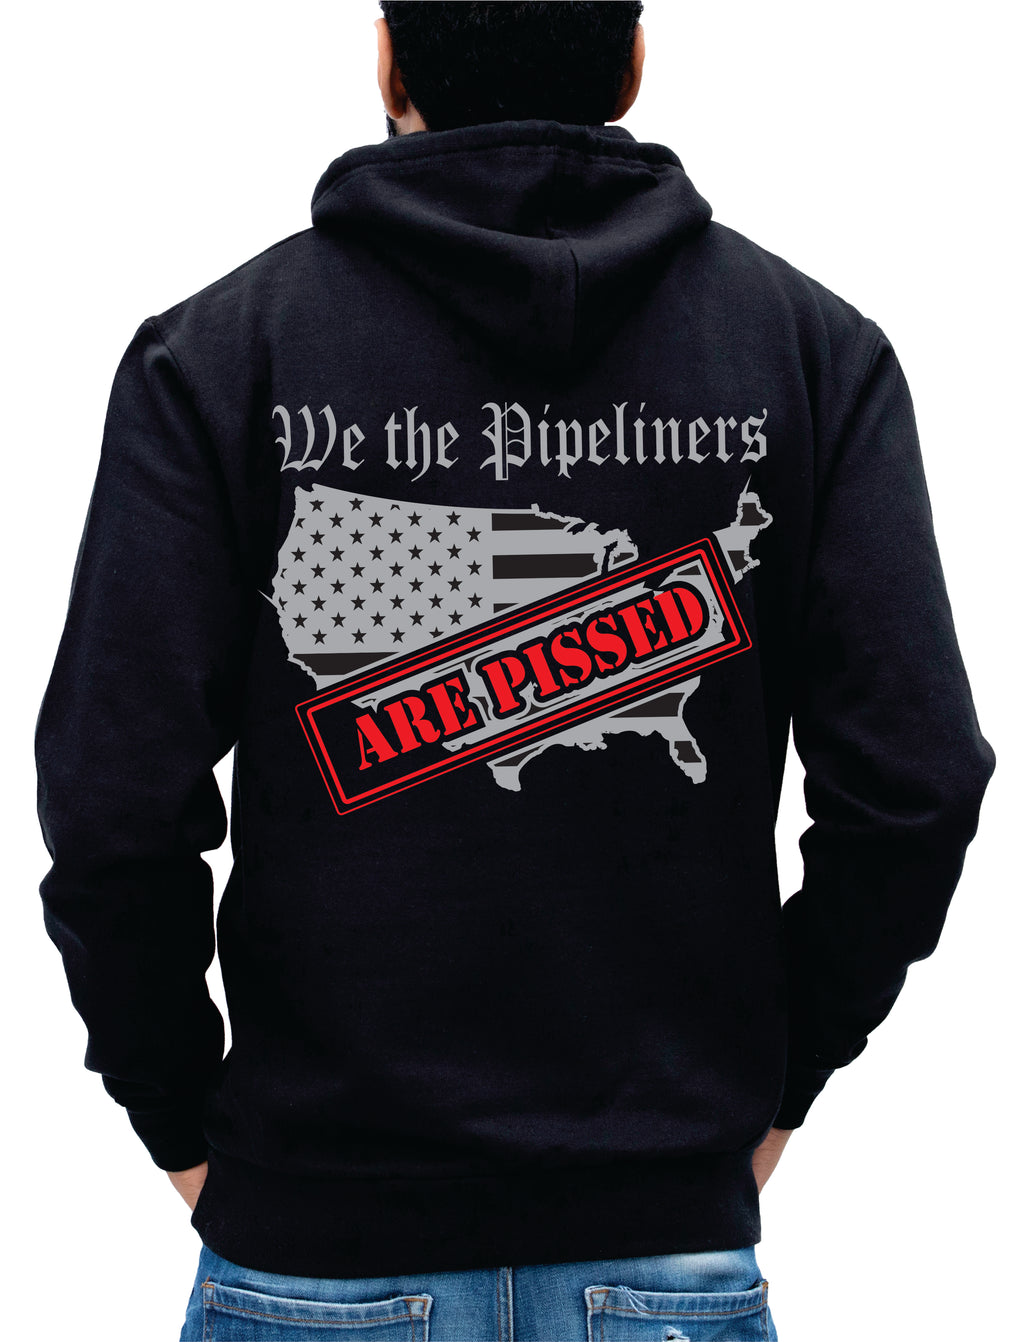 We the Pipeliners...are Pissed Shirt